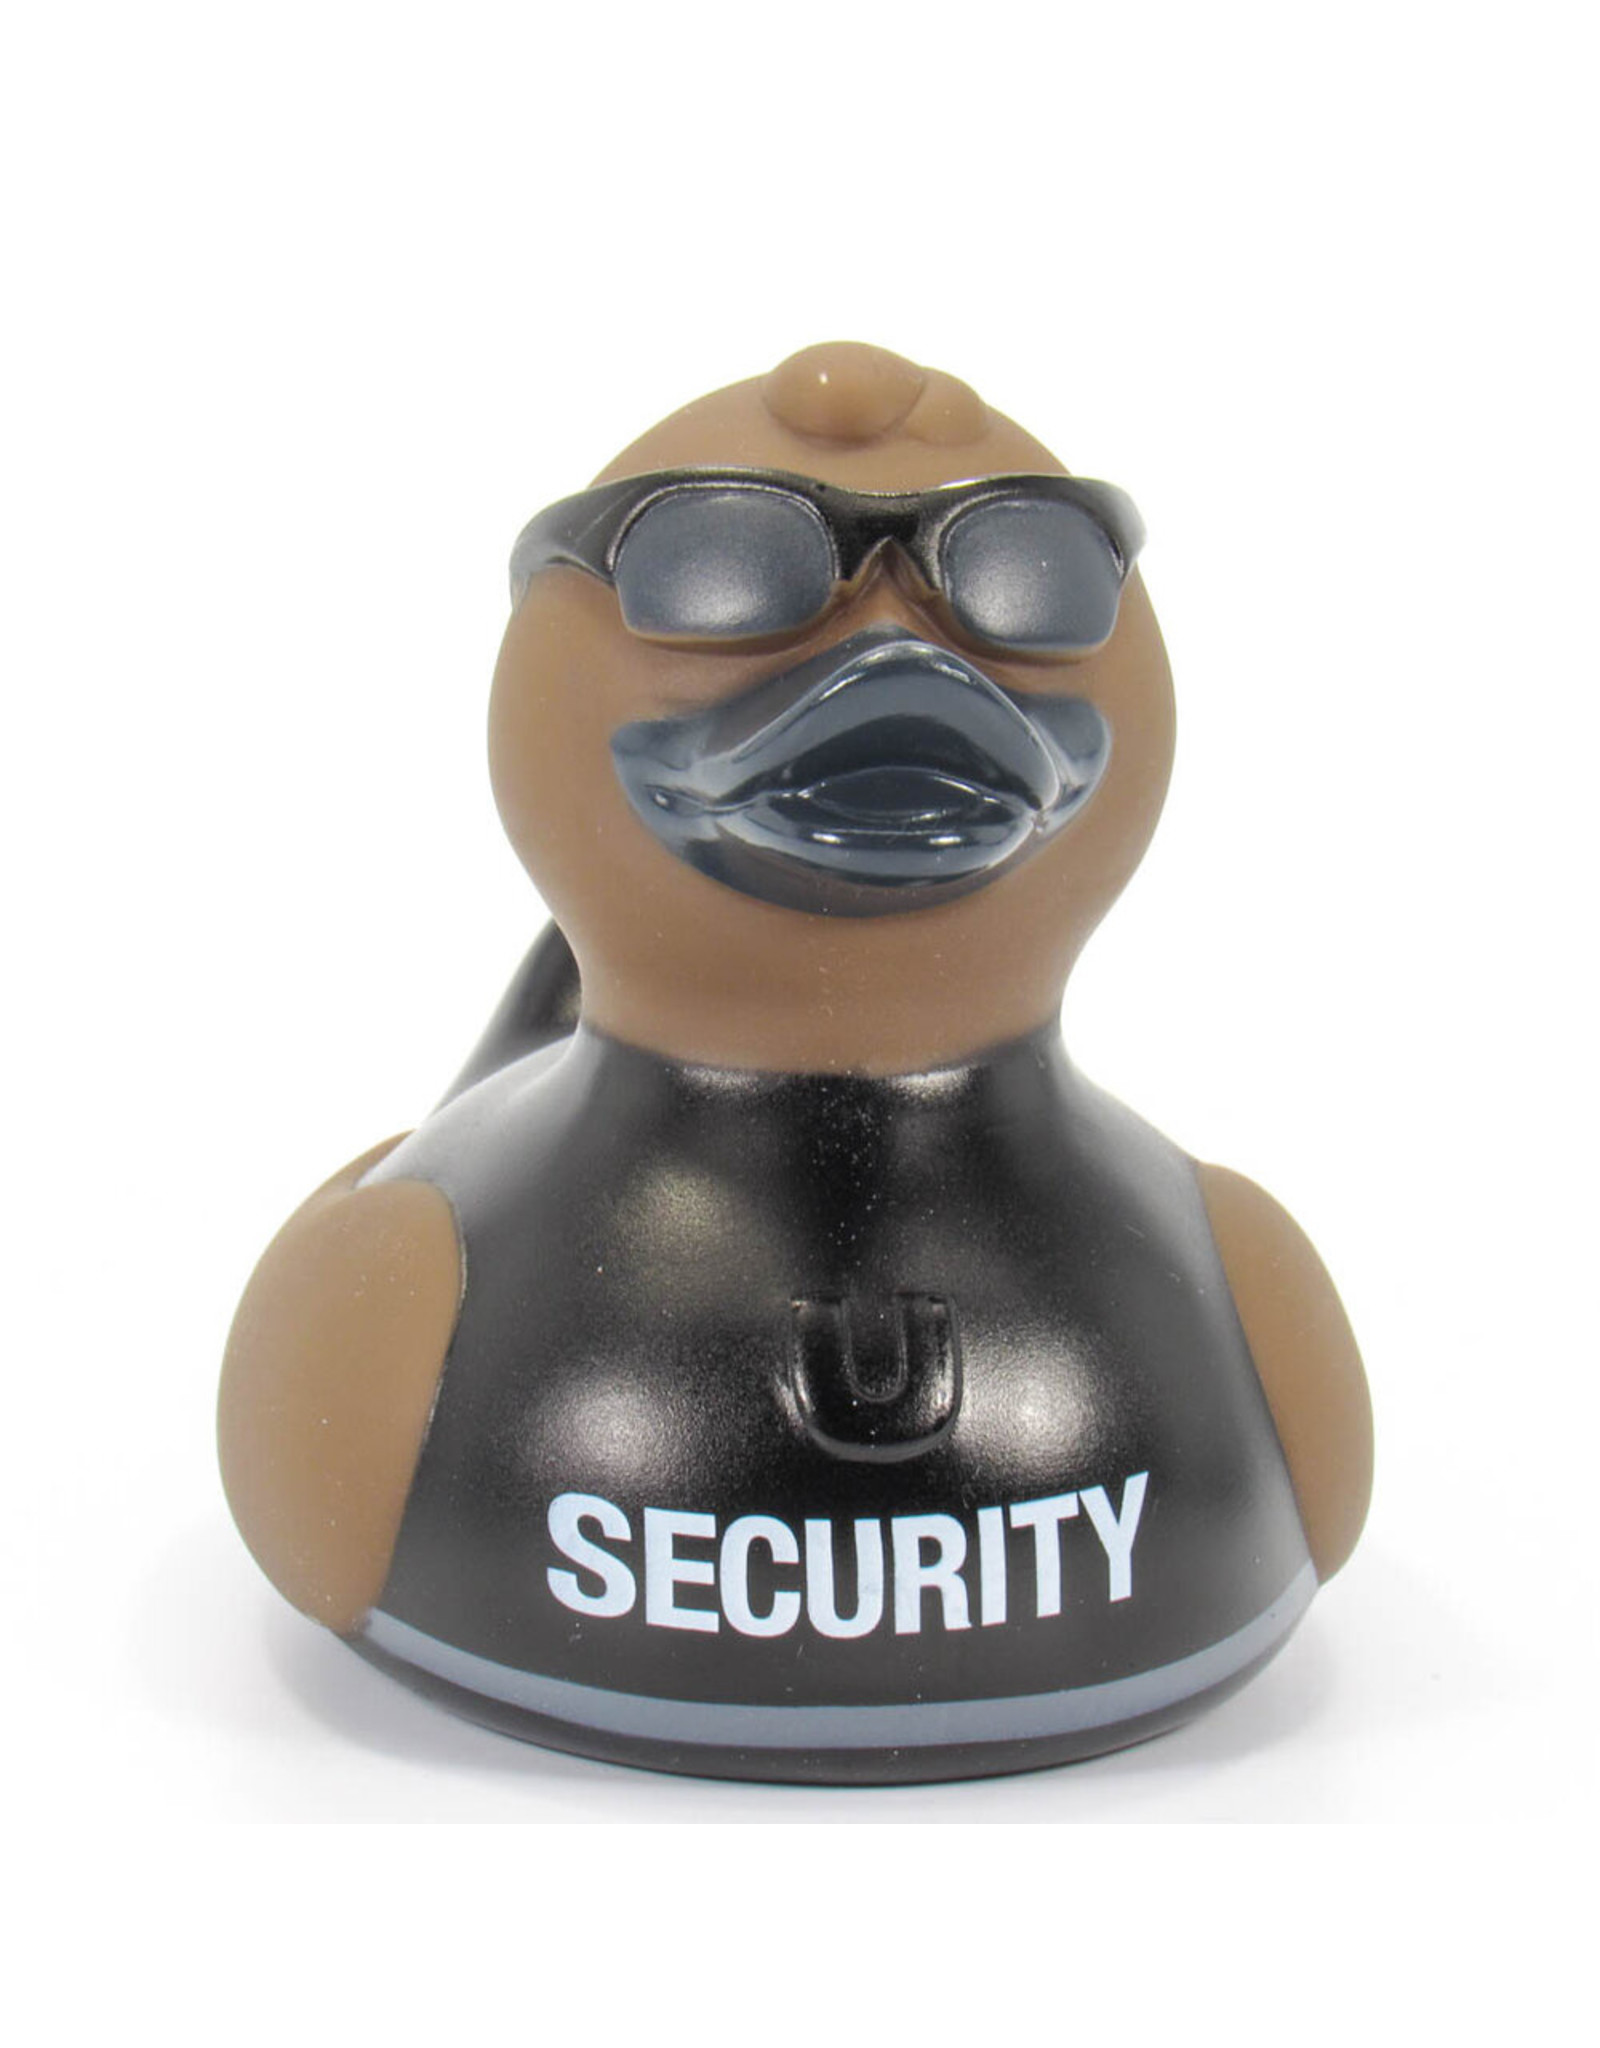 Security Rubber Duck